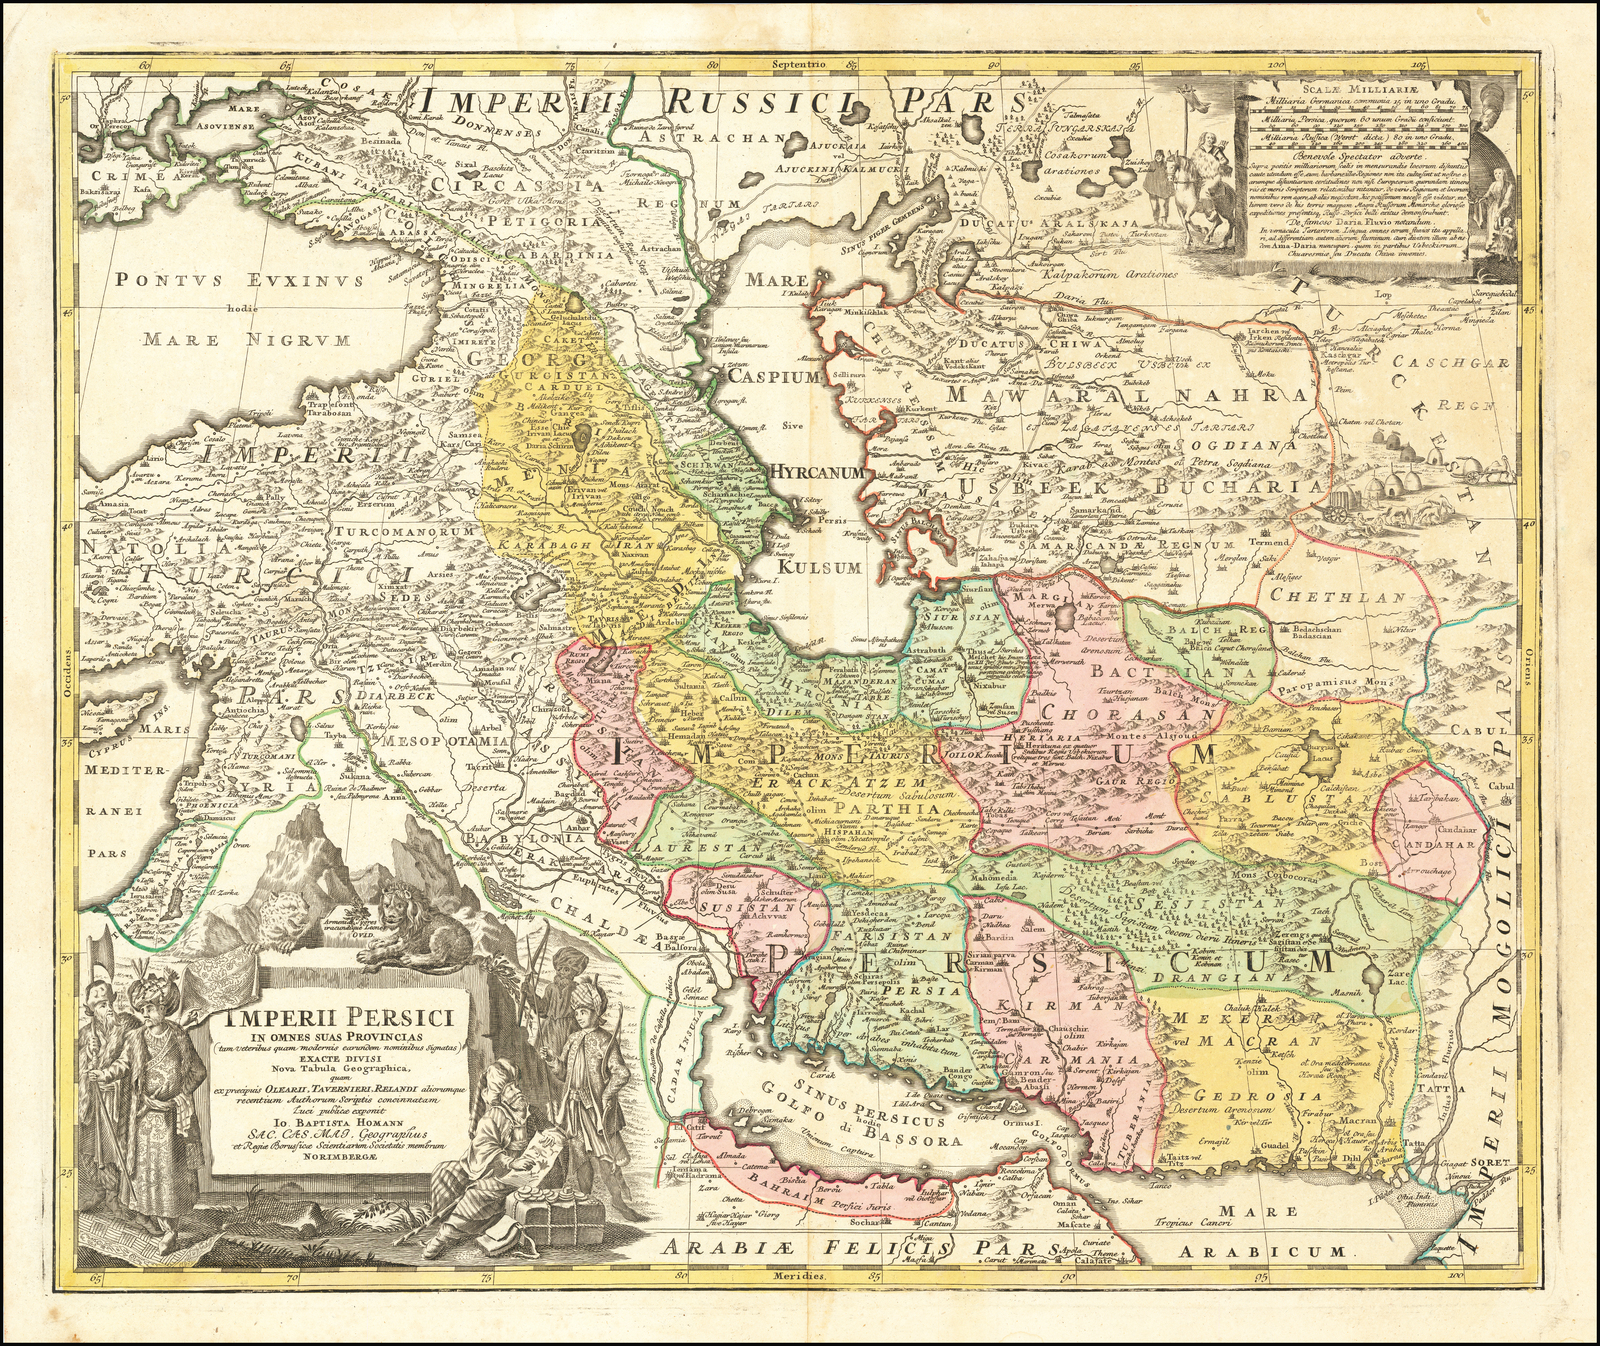 Cartographic Curiosities Hosted by The James Smith Noel Collection